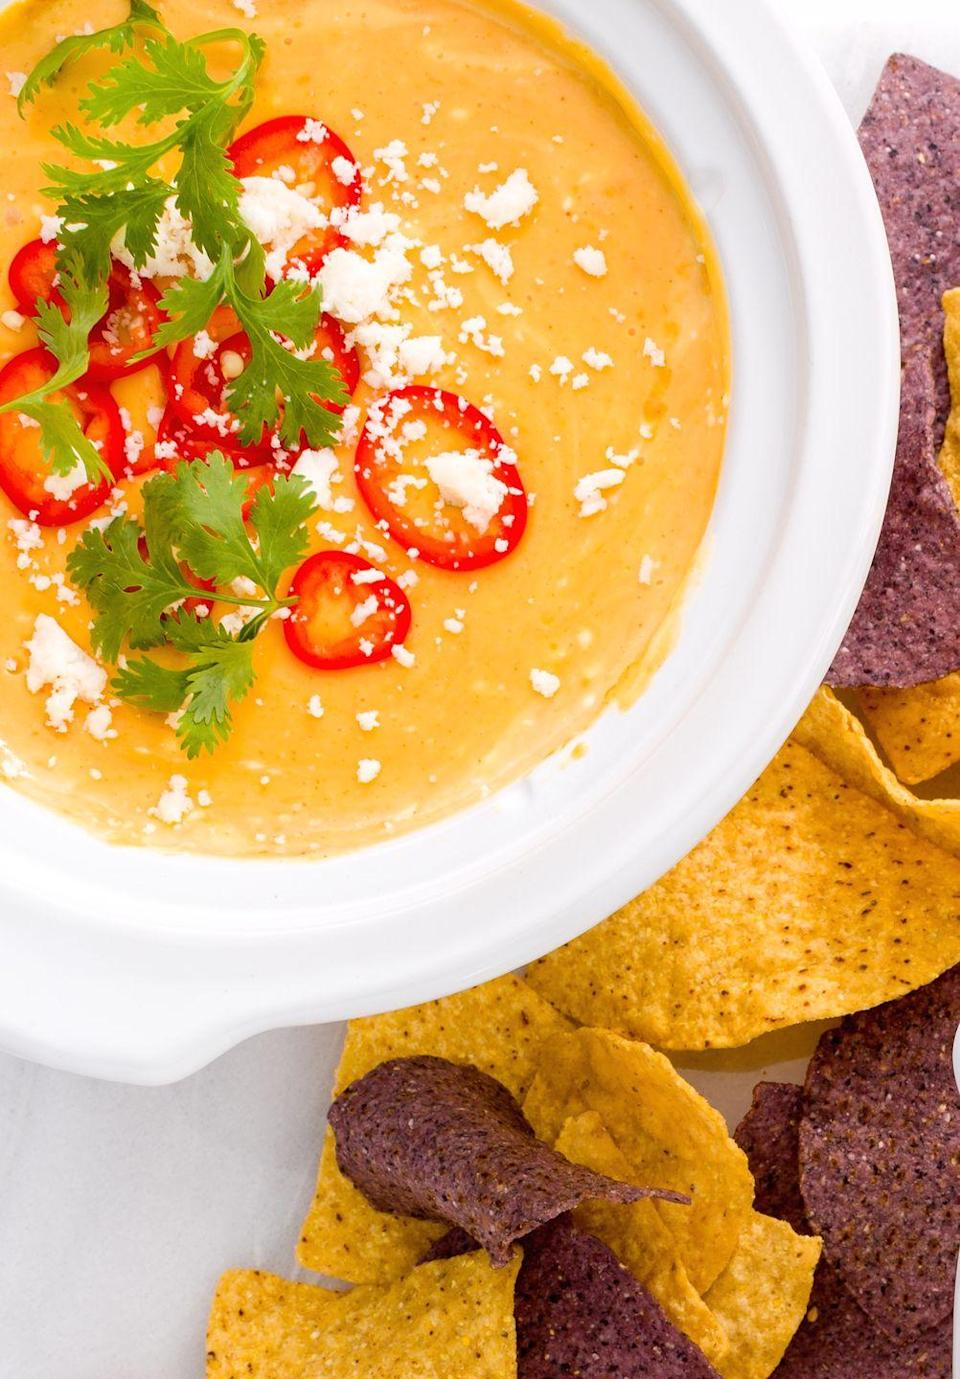 """<p>Fact: Ain't no party until queso arrives. Texan purists might hate on this shortcut queso, but you—and your hungry guests—will only love it.</p><p>Get the recipe from <a href=""""https://www.delish.com/cooking/recipe-ideas/recipes/a44677/slow-cooker-queso-recipe/"""" rel=""""nofollow noopener"""" target=""""_blank"""" data-ylk=""""slk:Delish"""" class=""""link rapid-noclick-resp"""">Delish</a>.</p>"""